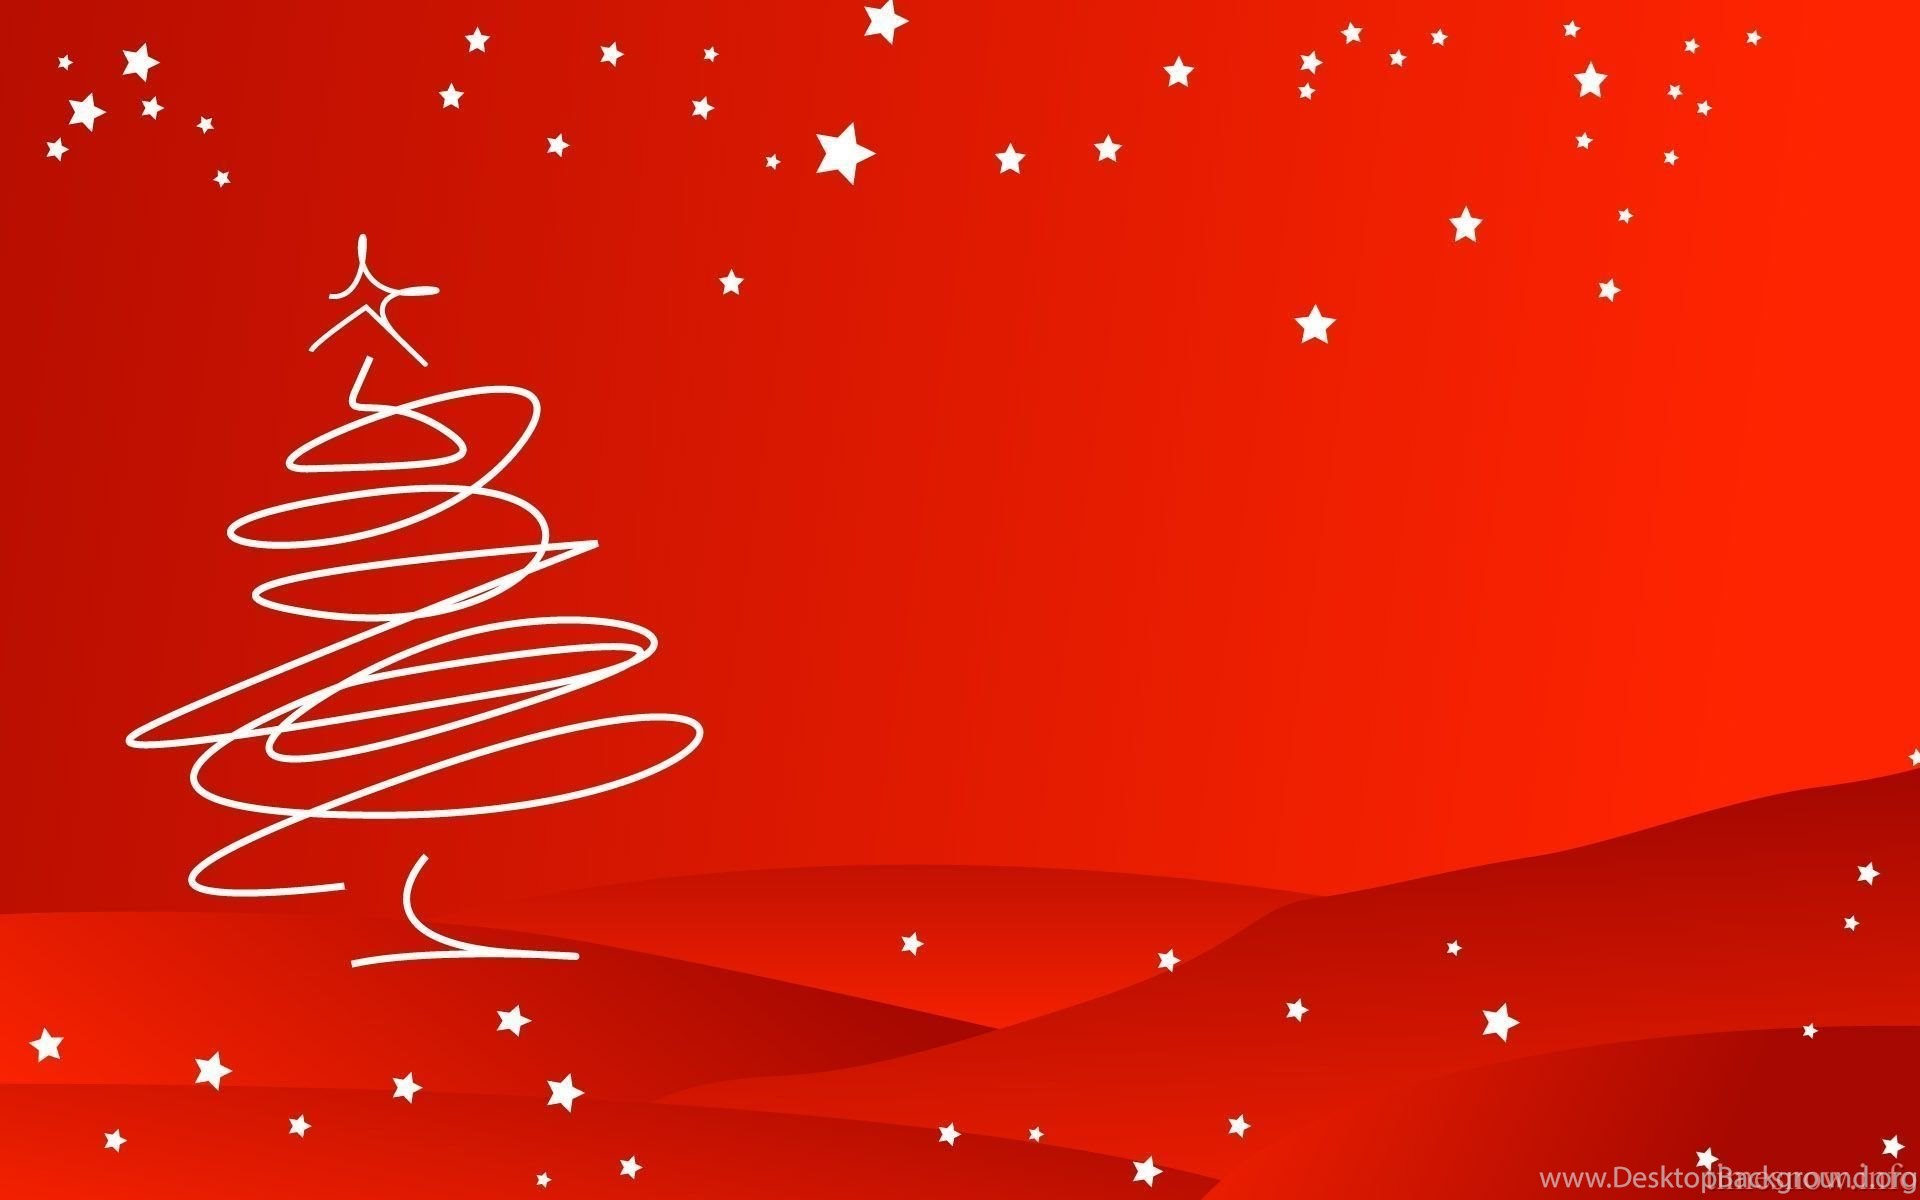 Red Christmas Backgrounds Happy Holidays Desktop Background